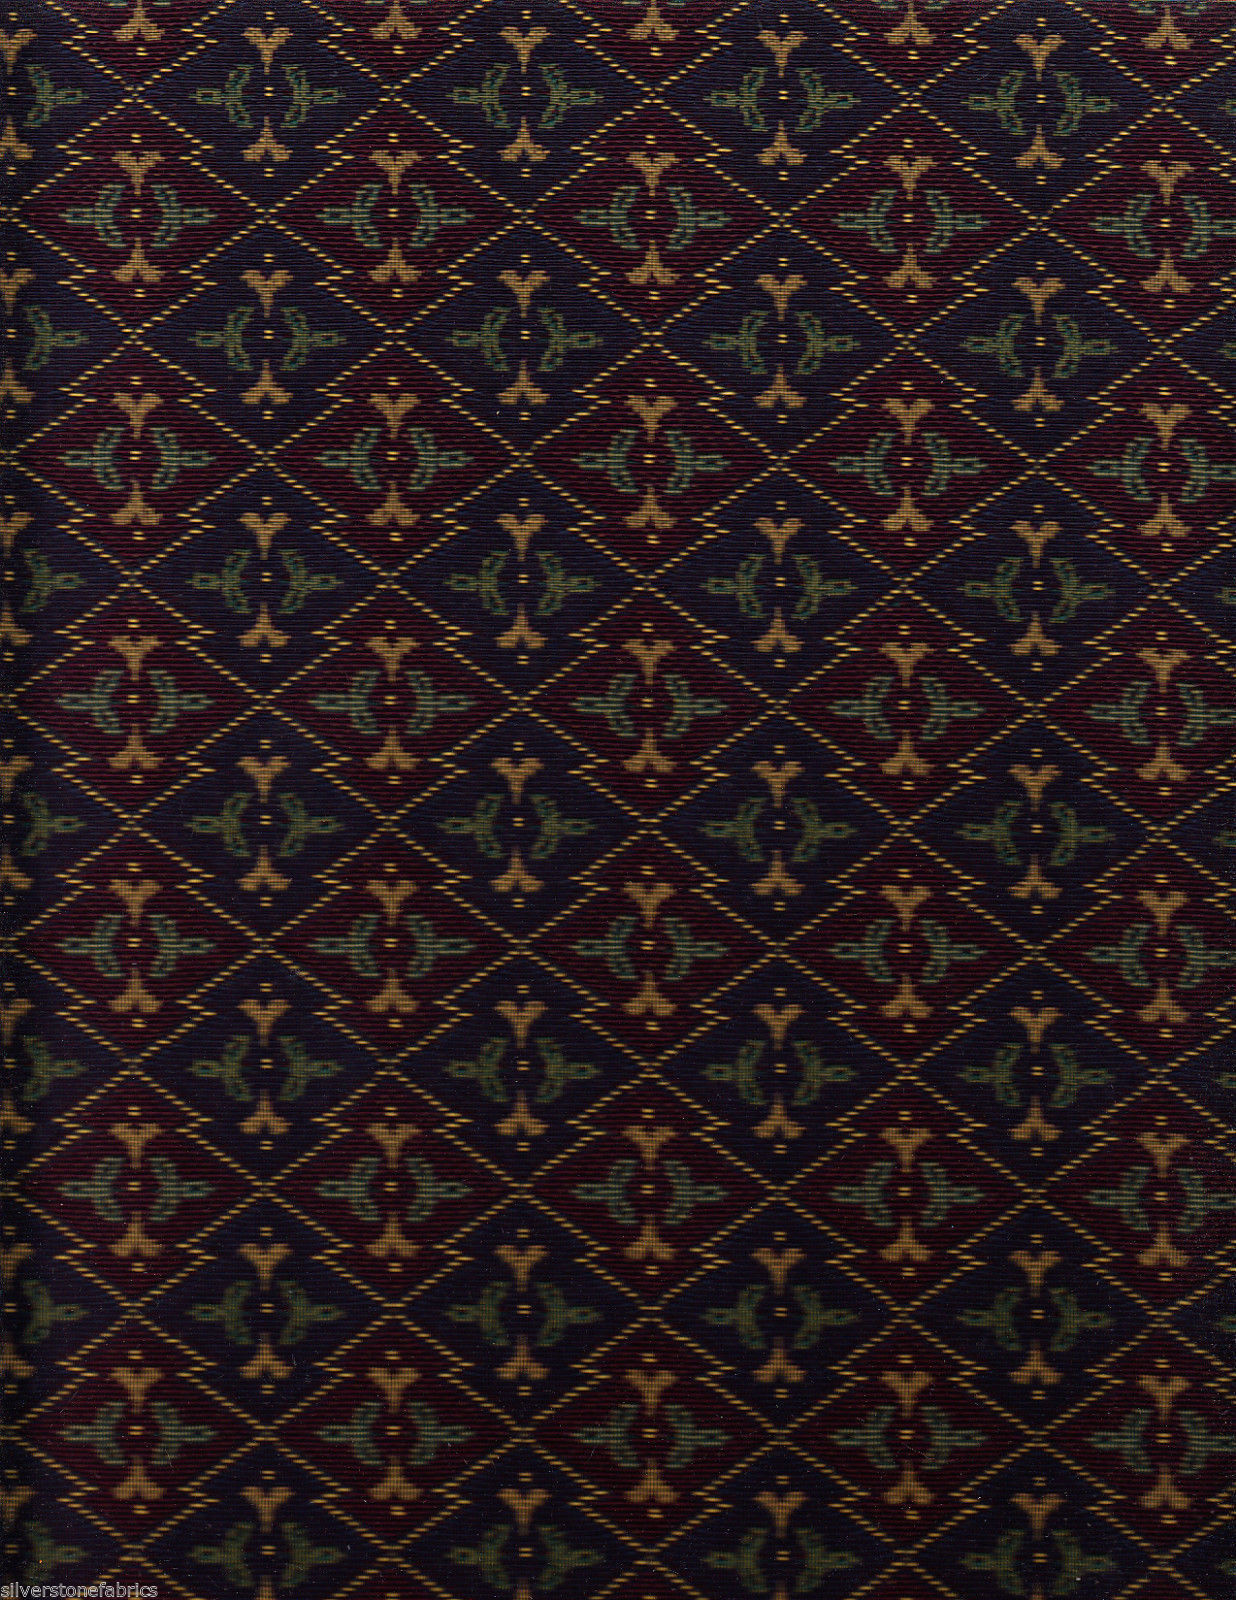 14 yds Imported German Tapestry Upholstery Fabric Alpine Flowers Purple GQ1-c14